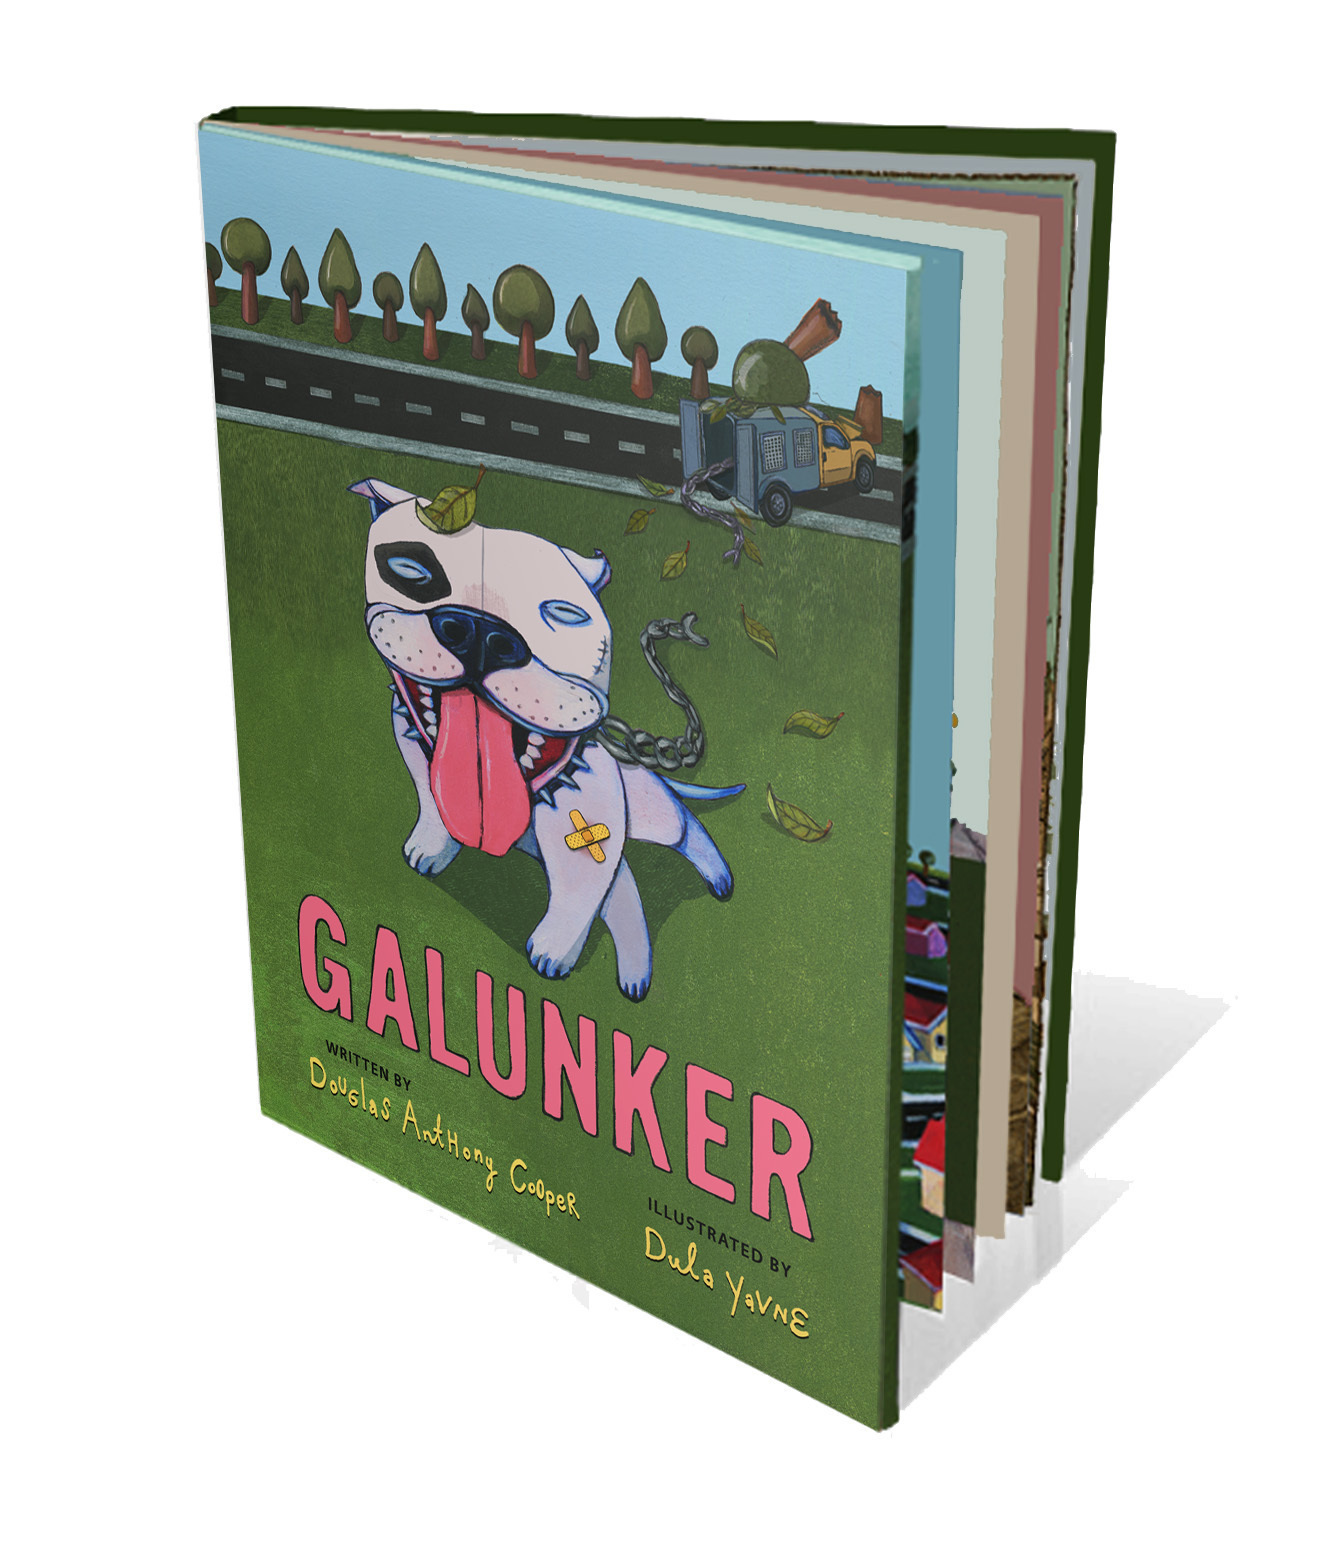 Galunker, A Children's Book About A Pit Bull, Gathers Huge Kickstarter Following